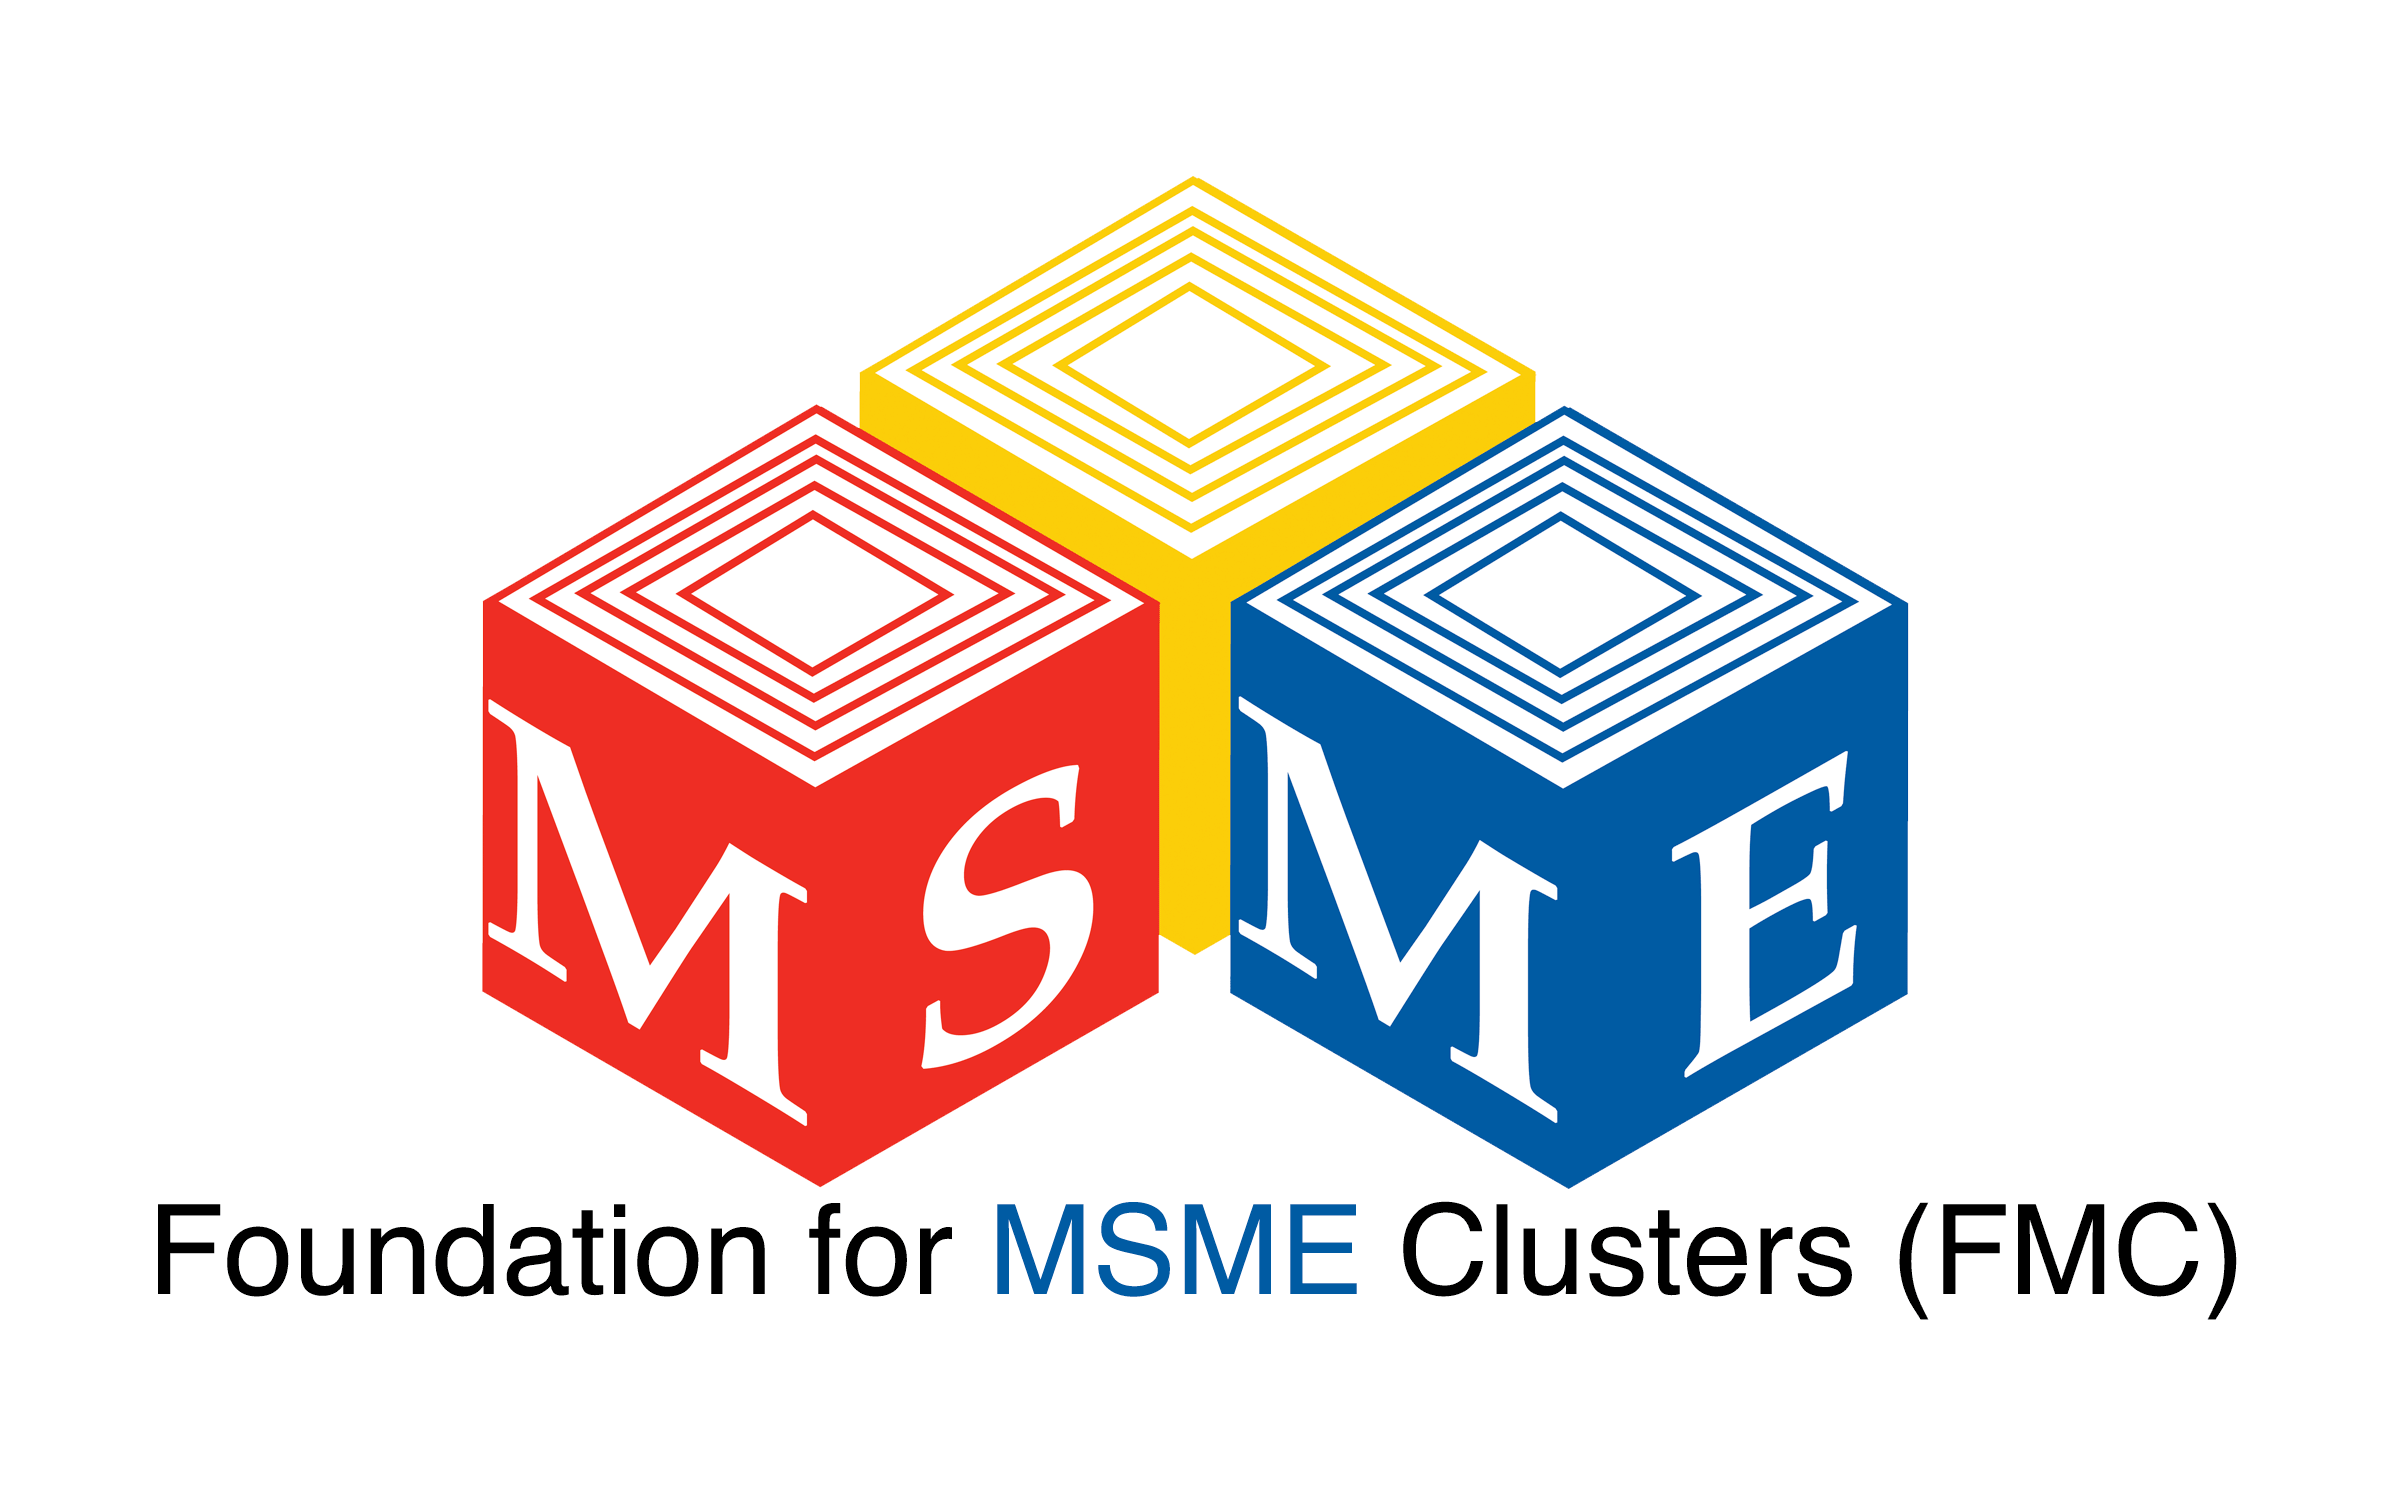 msmefoundation, MSME Cluster- Cluster India, MSME Clusters